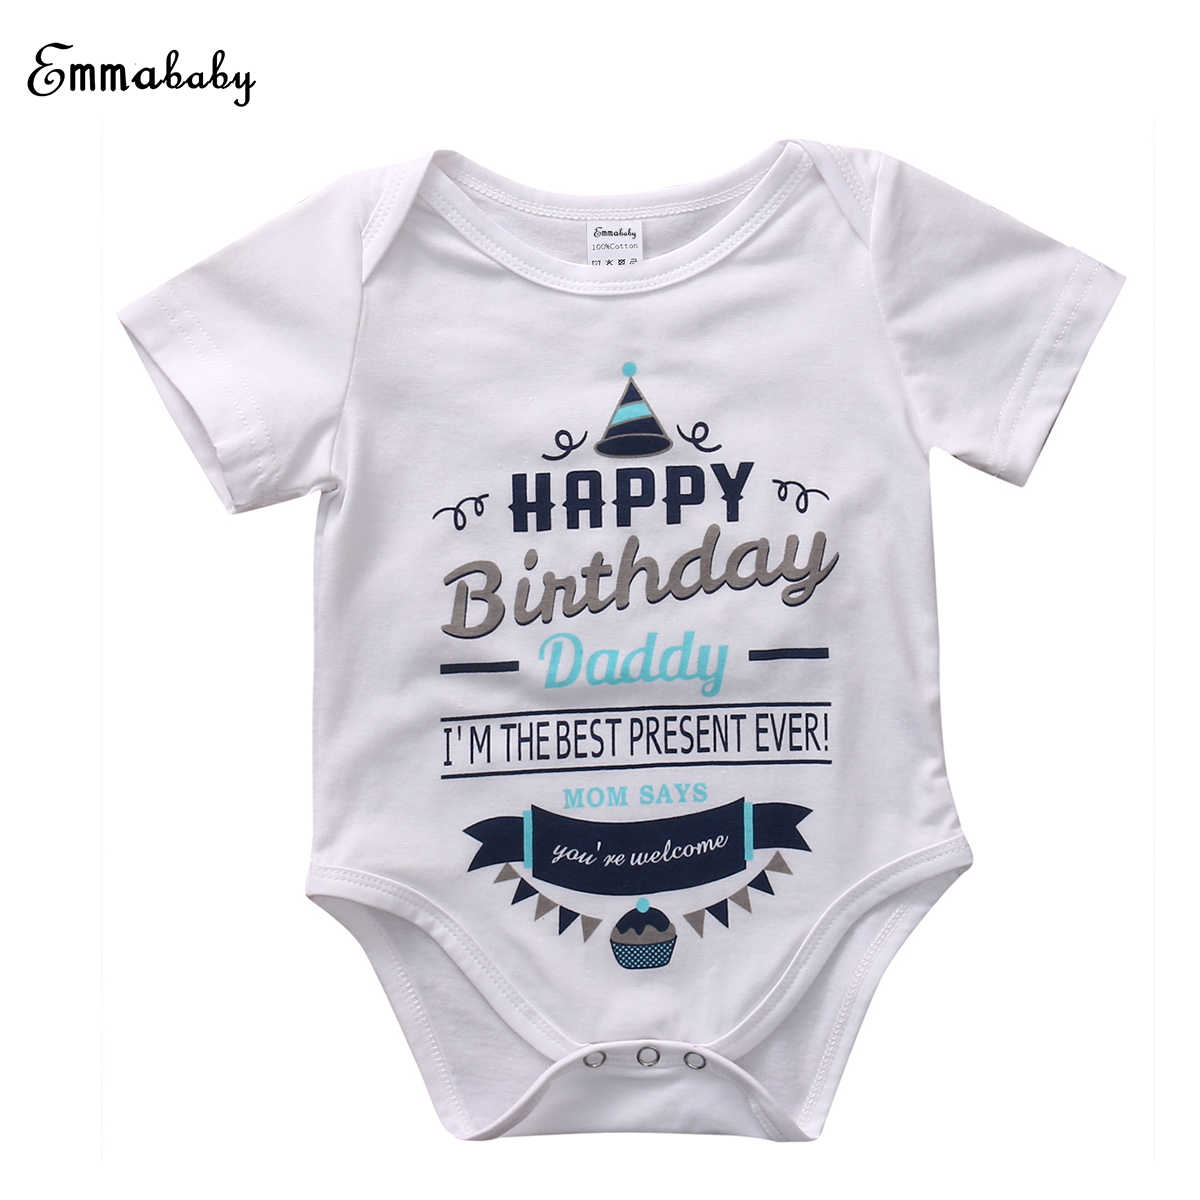 Newborn Infant Baby Boy Girl Rompers Short Sleeve Jumpsuit Happy Birthday Party Clothes Kids Boys Girls